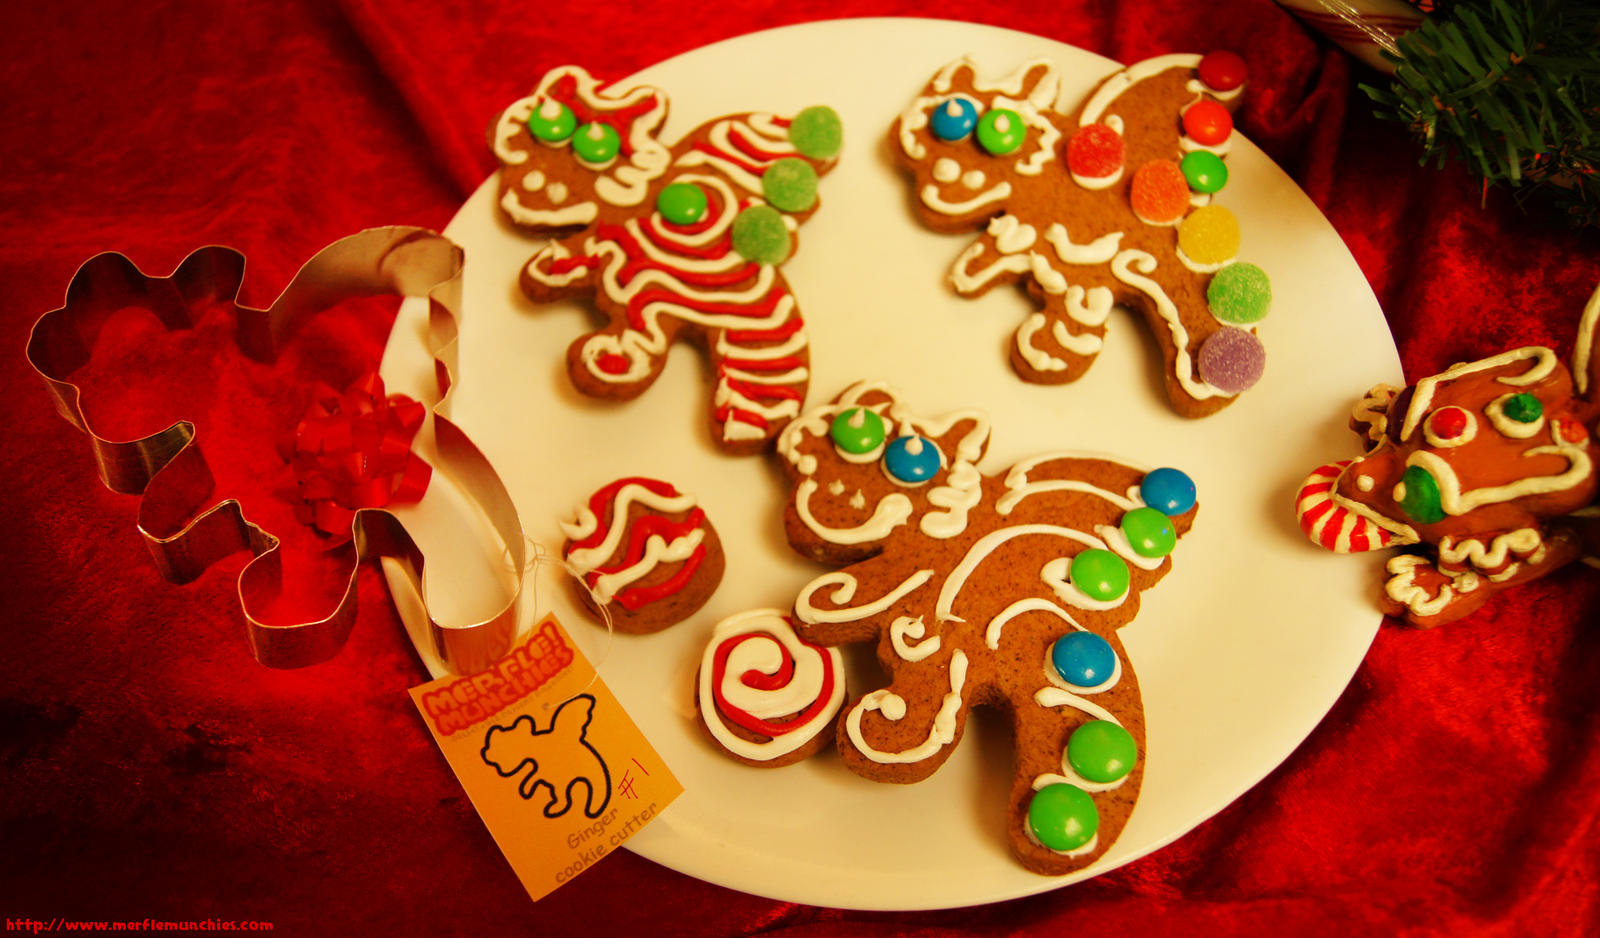 Gingerbread cookie dragons by The-SixthLeafClover